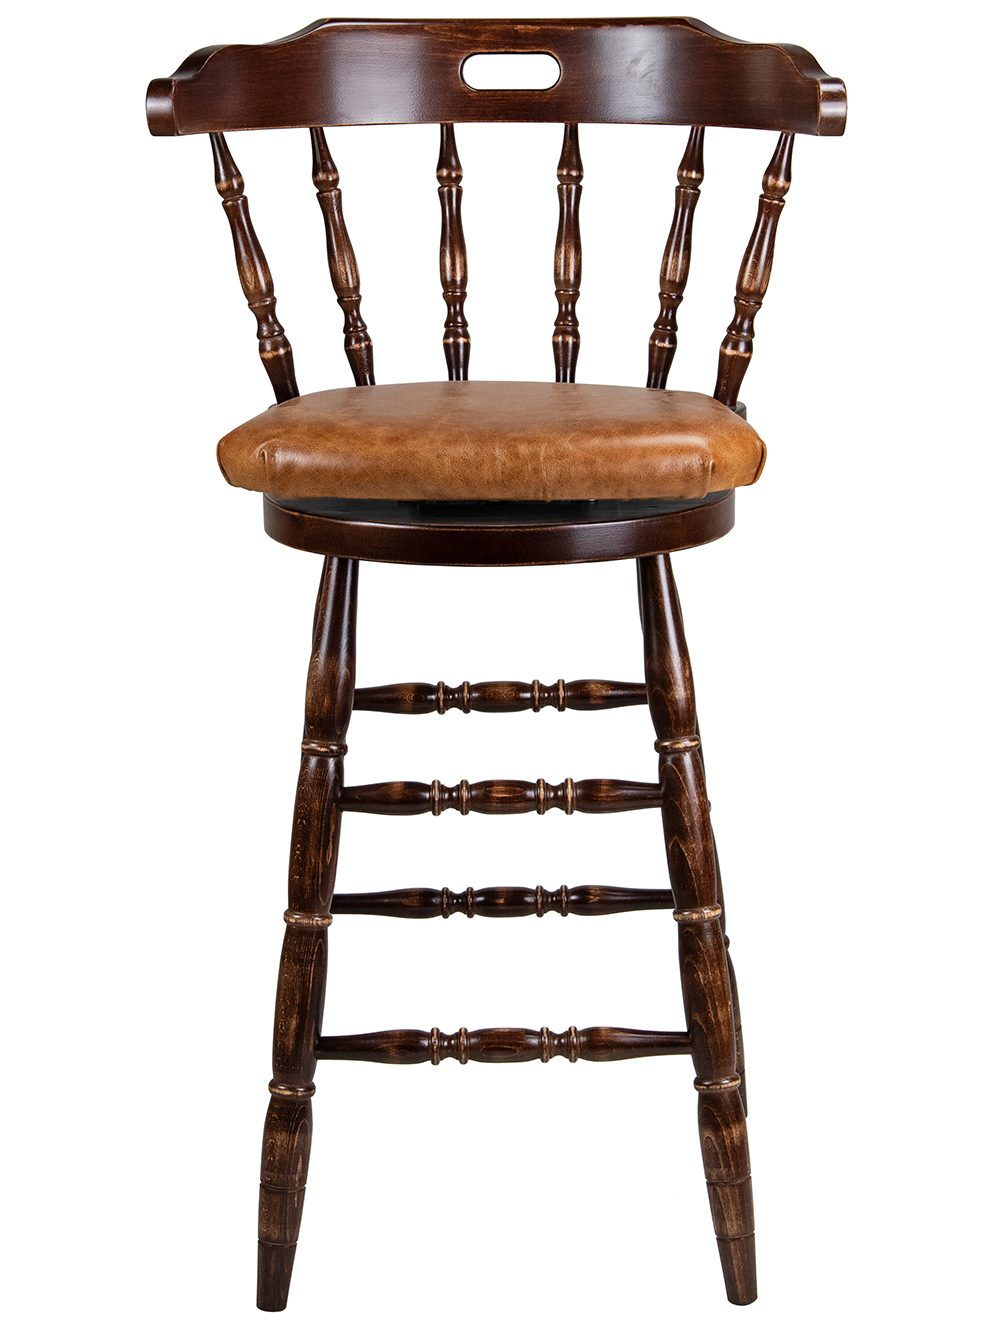 Captains Swivel High Stool -Contract Furniture Supplier